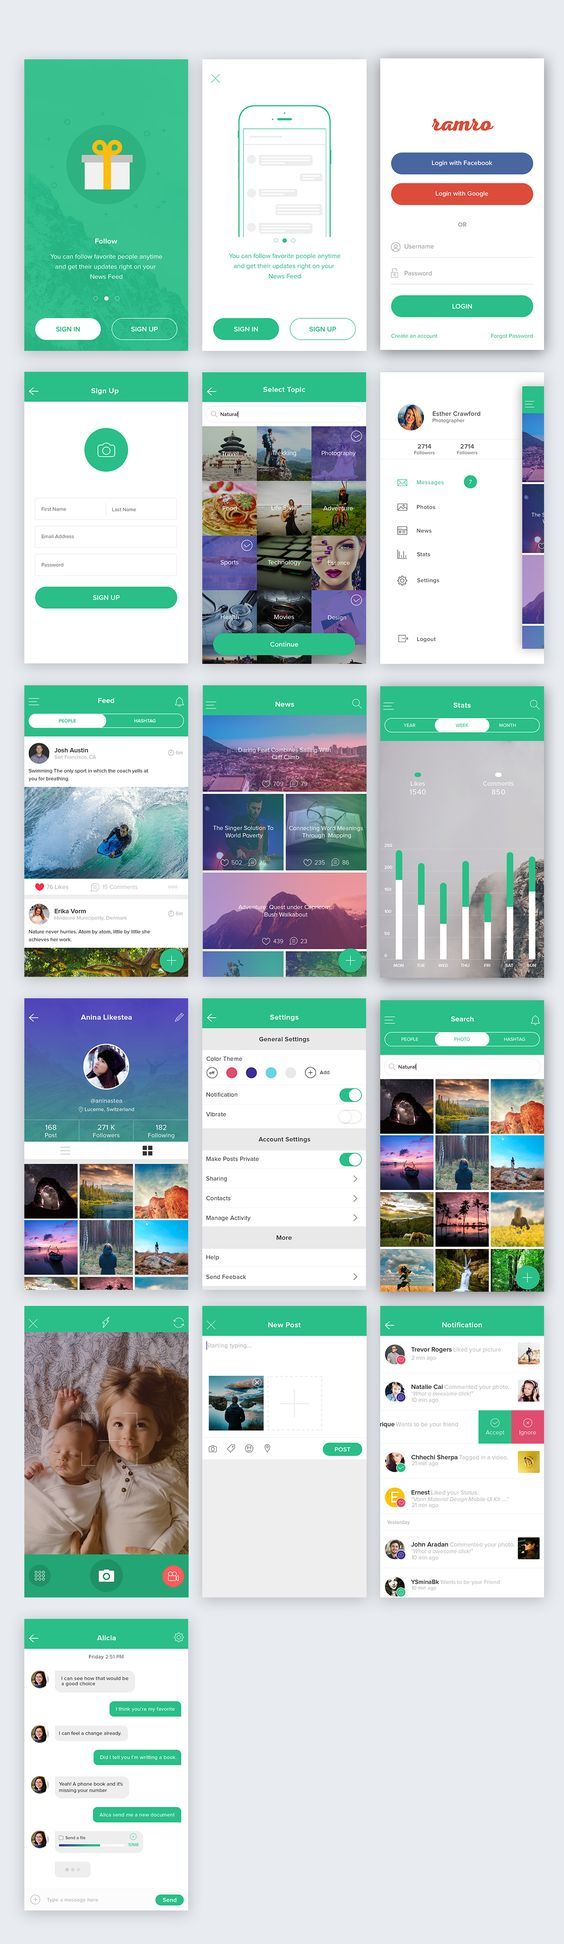 iOS app UI with Material design language - login - sign up - social -chat